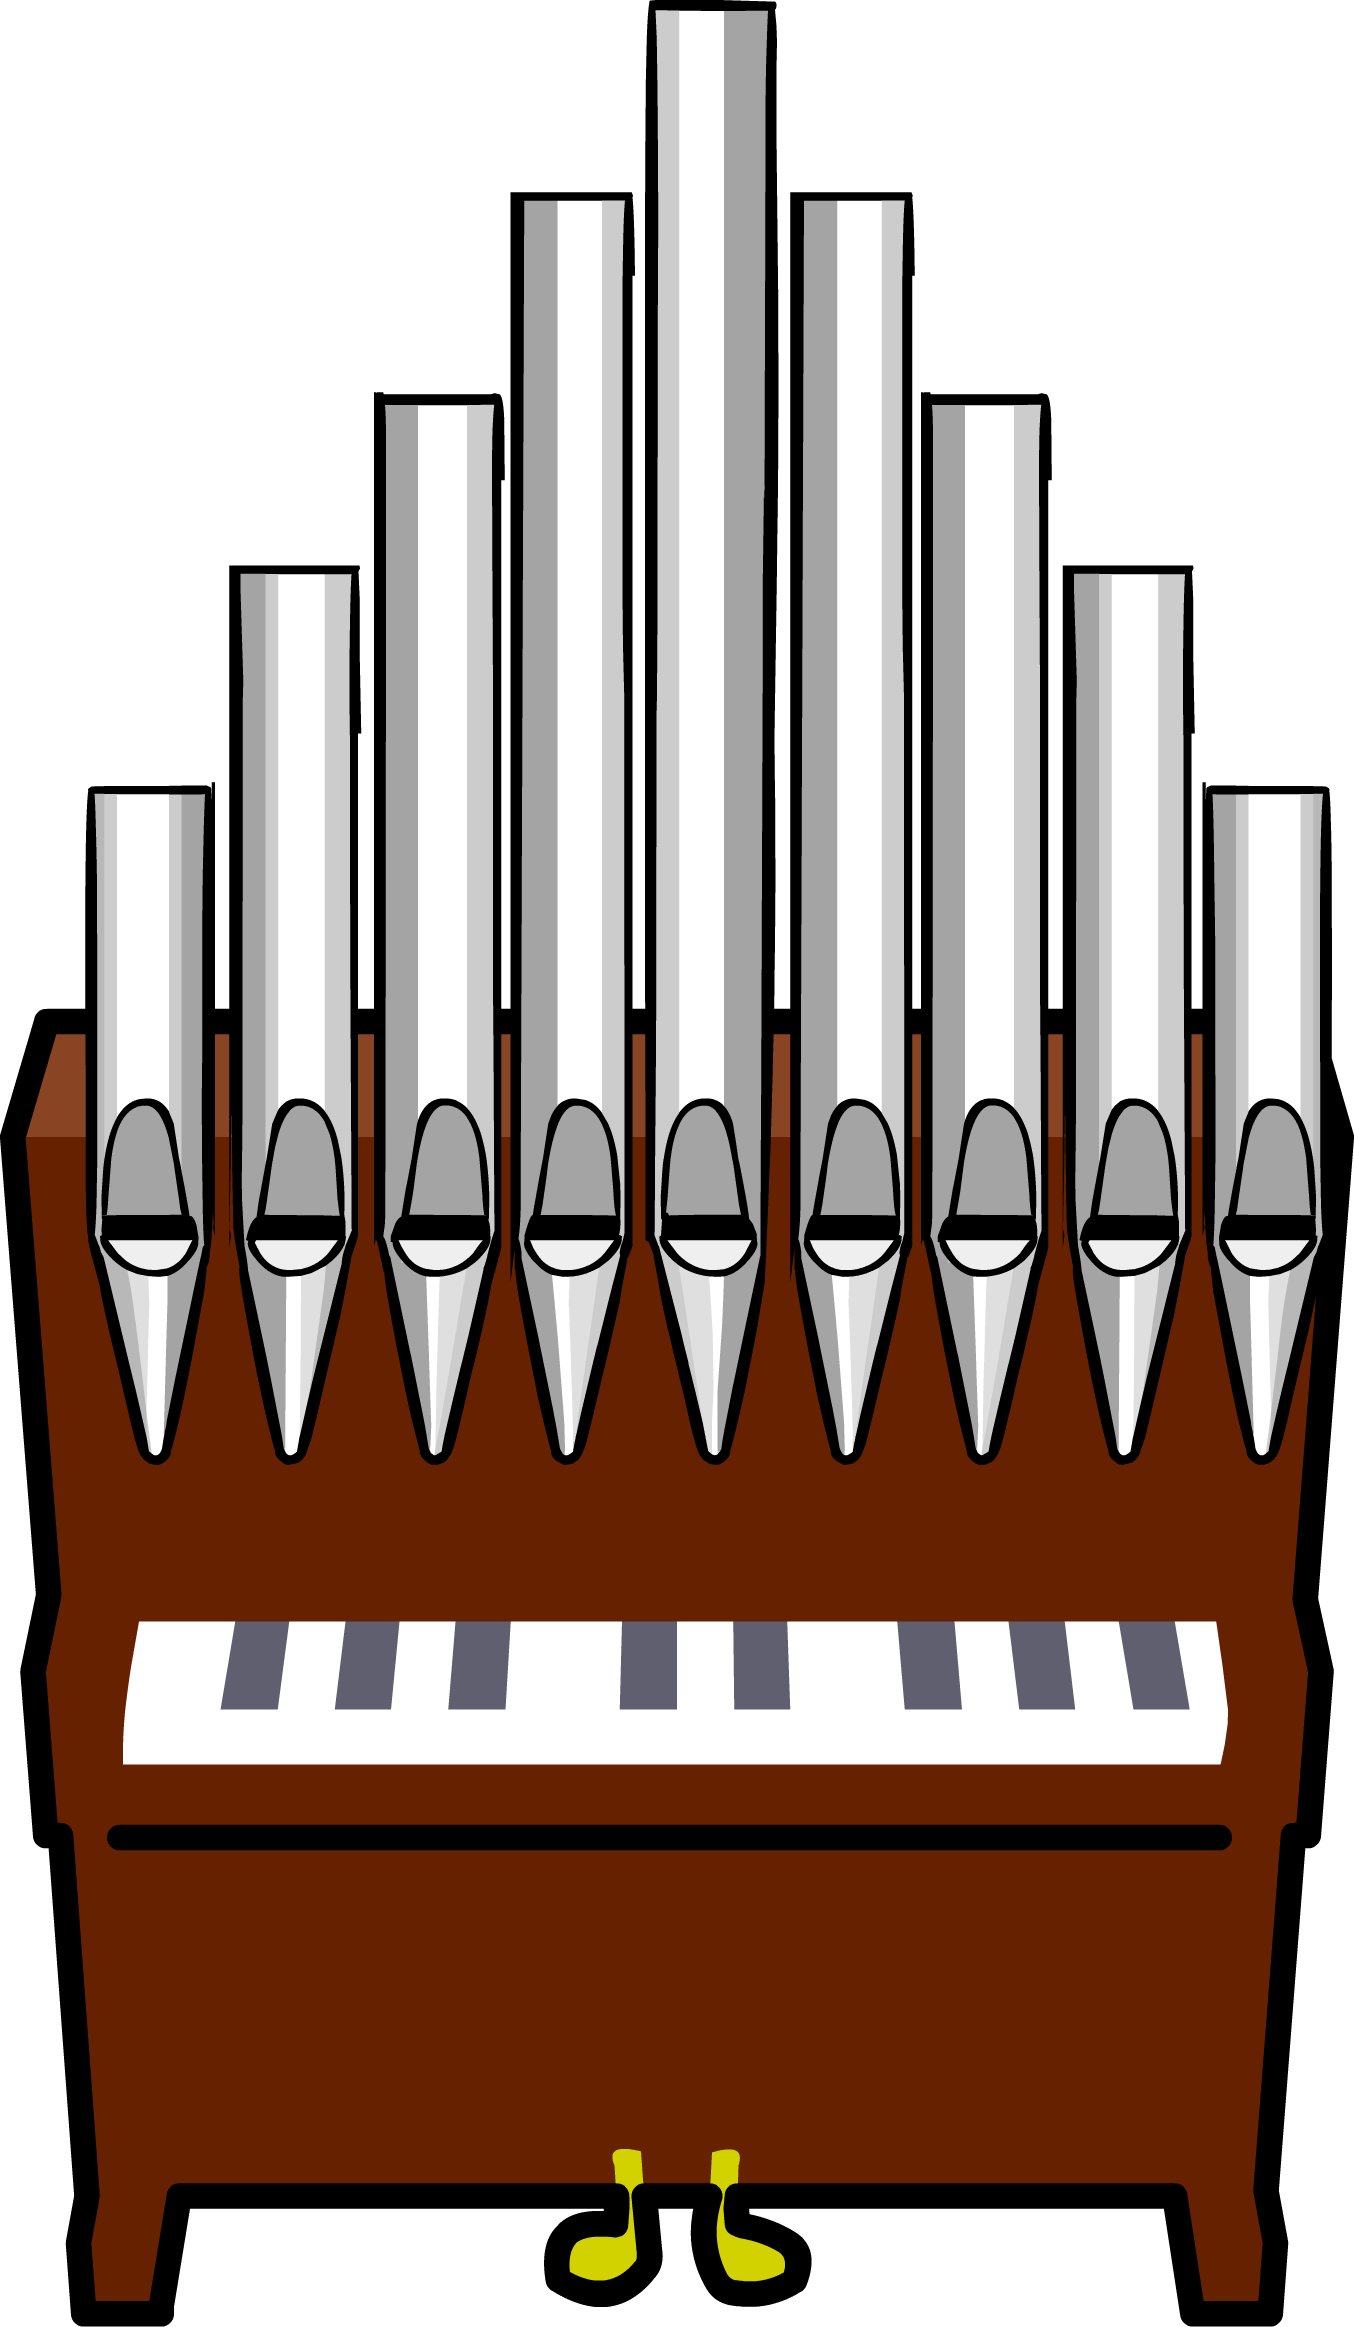 Church organ clipart cute black and white banner free stock Organist Cliparts - Cliparts Zone banner free stock